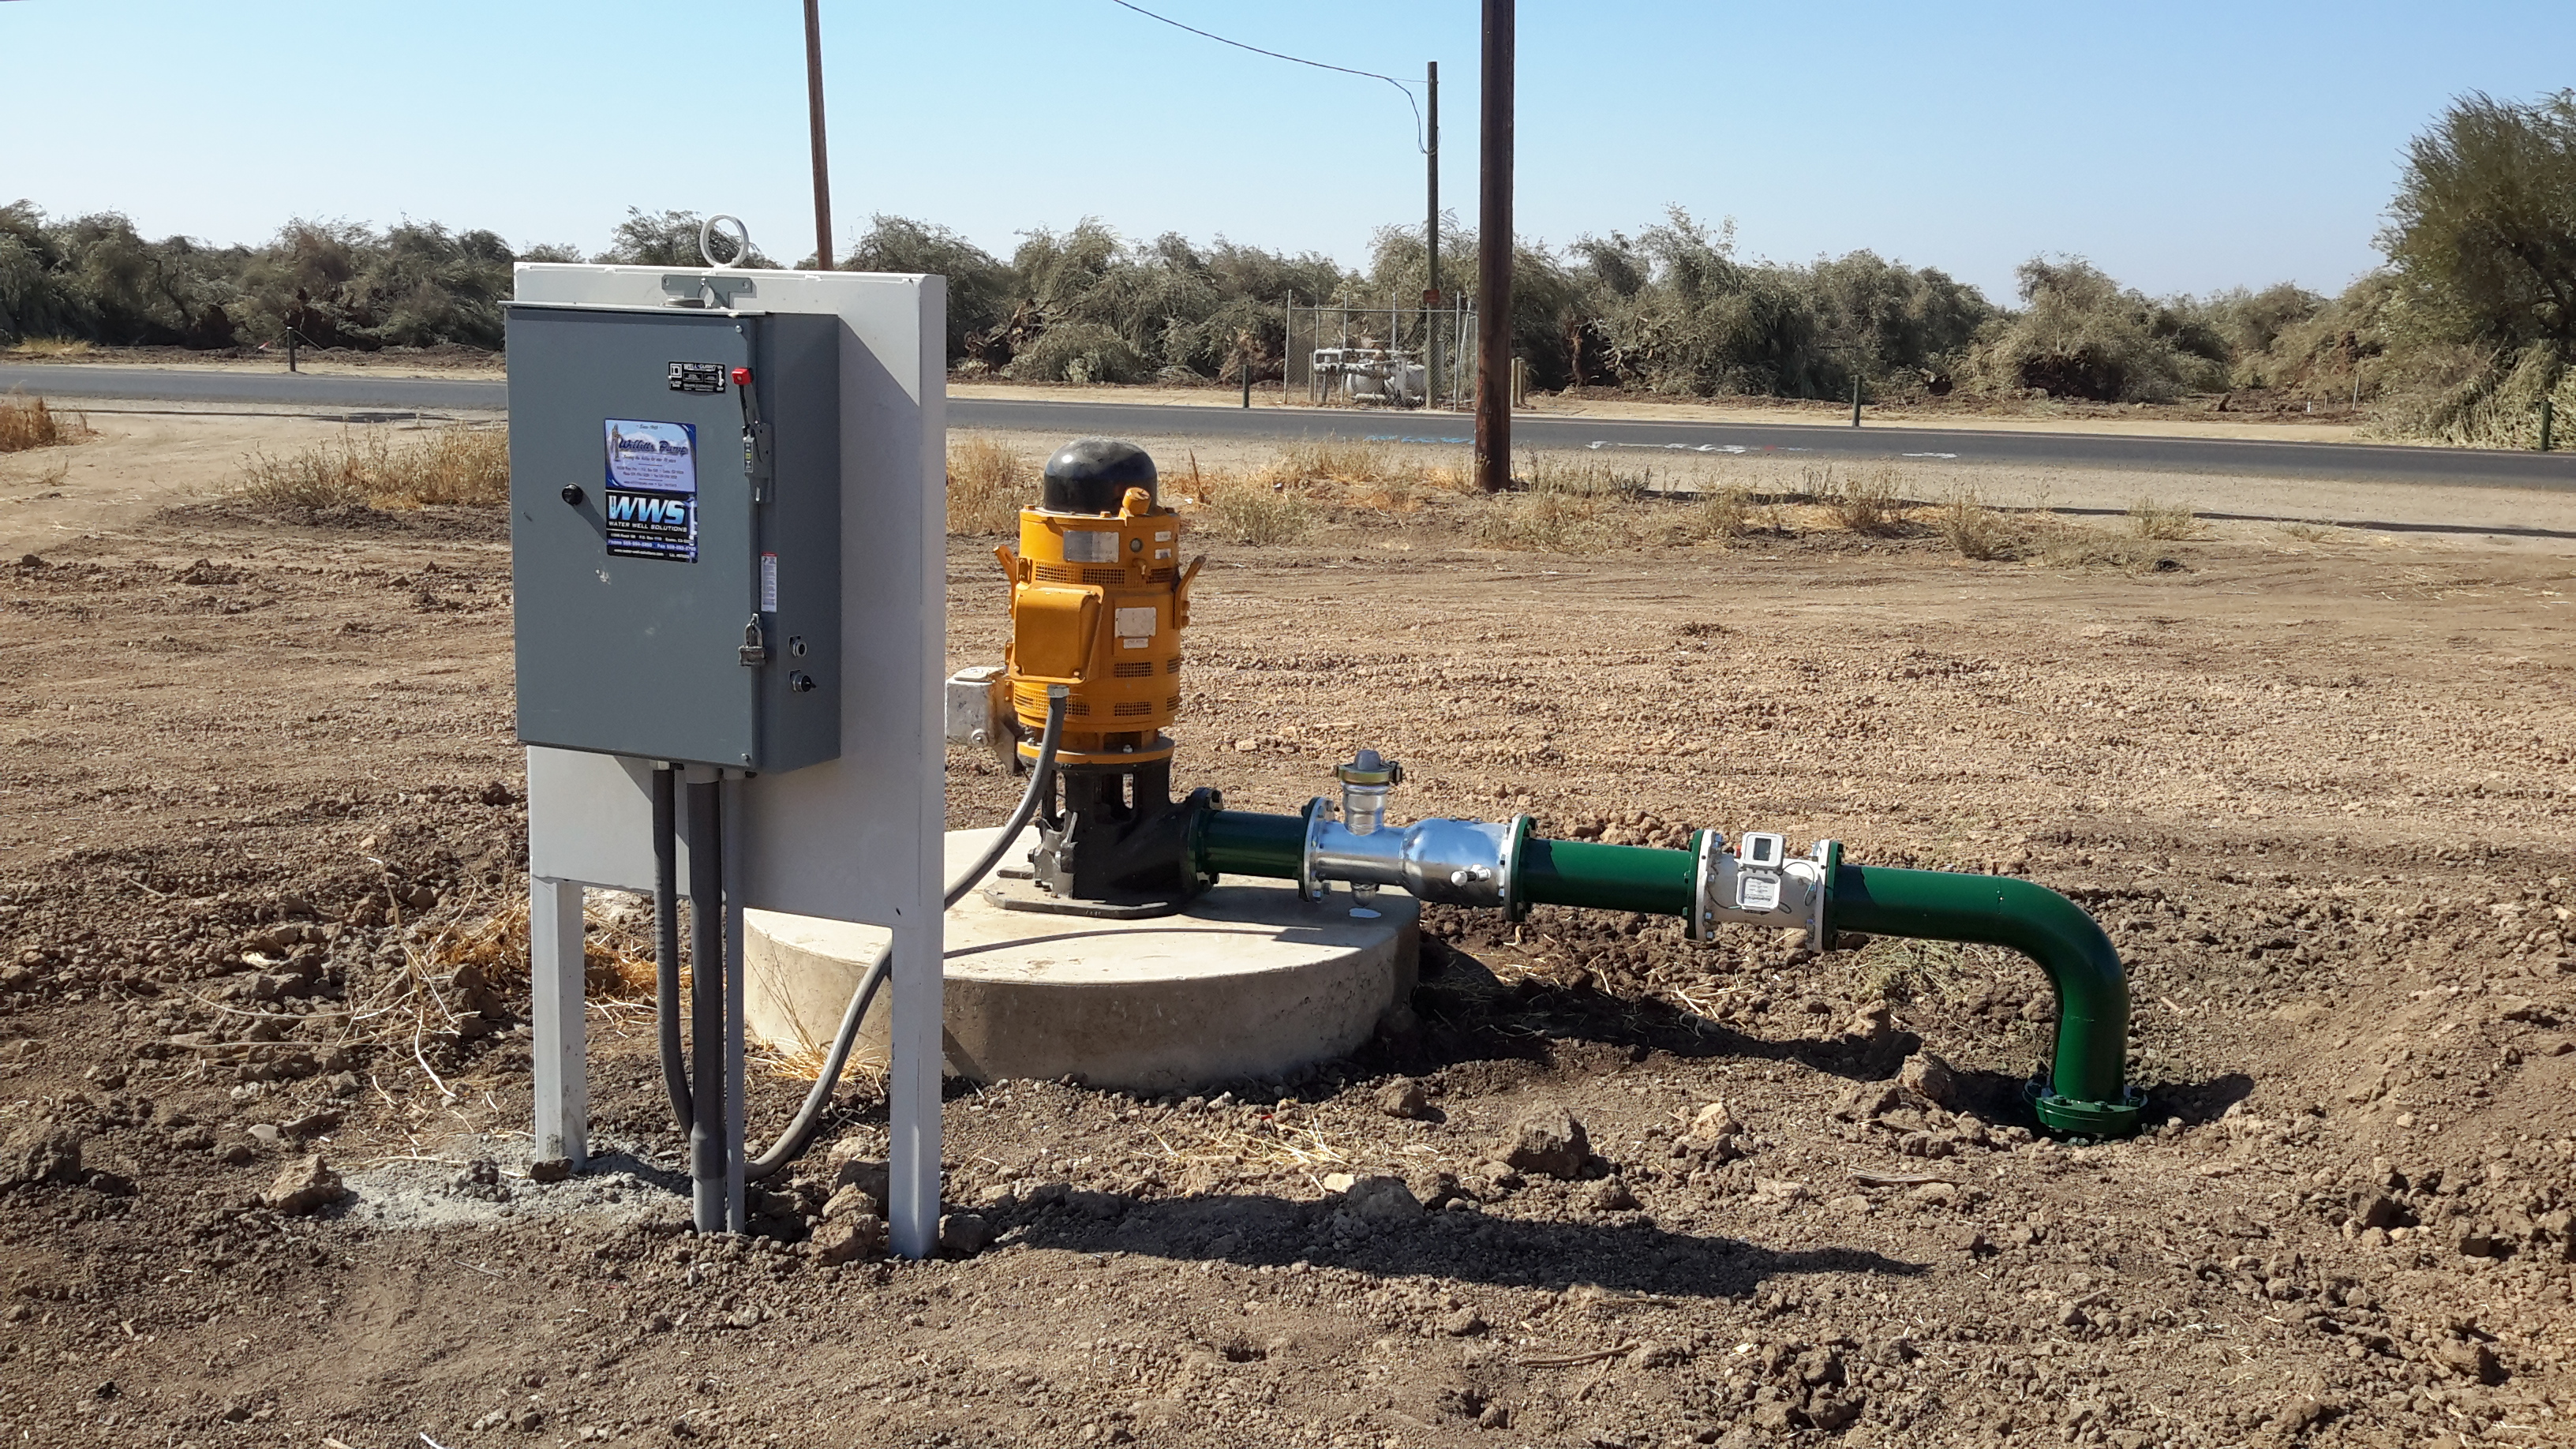 Pump And Irrigation Service 24 7 Emergency Service